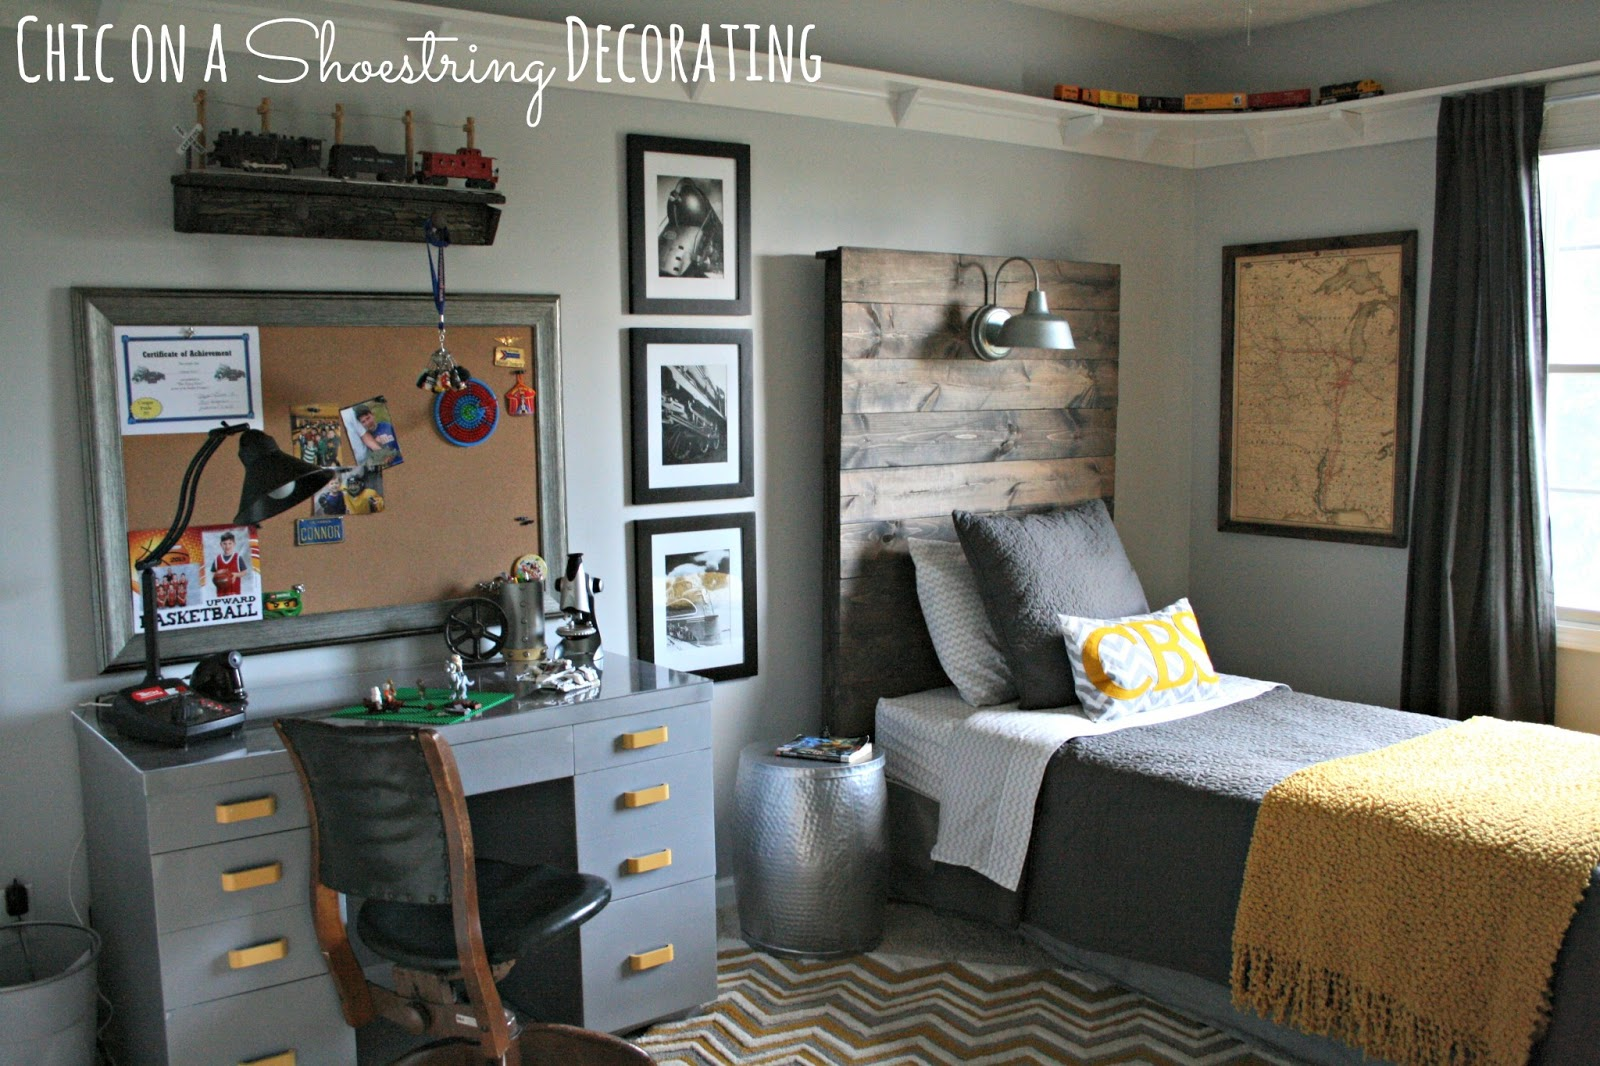 14 Year Old Room Ideas Chic On A Shoestring Decorating Bigger Boy Room Reveal